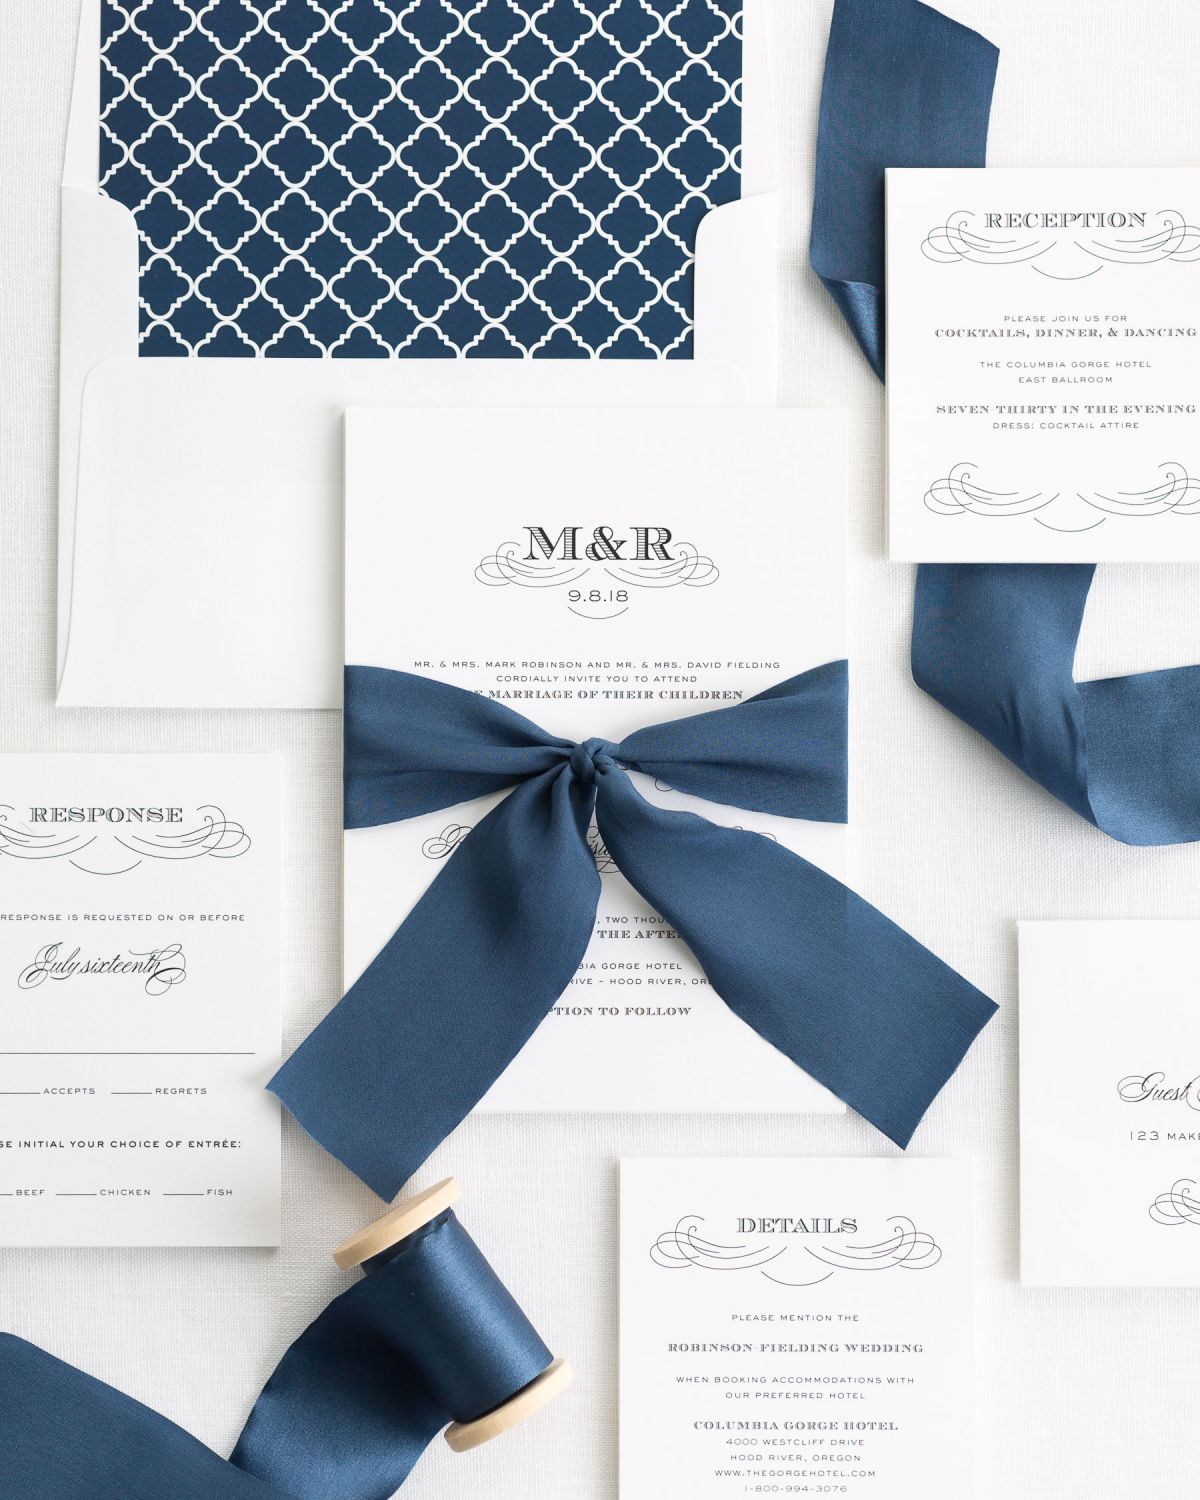 Complete Wedding Invitation Package with Dark Blue Ribbon and Enclosures